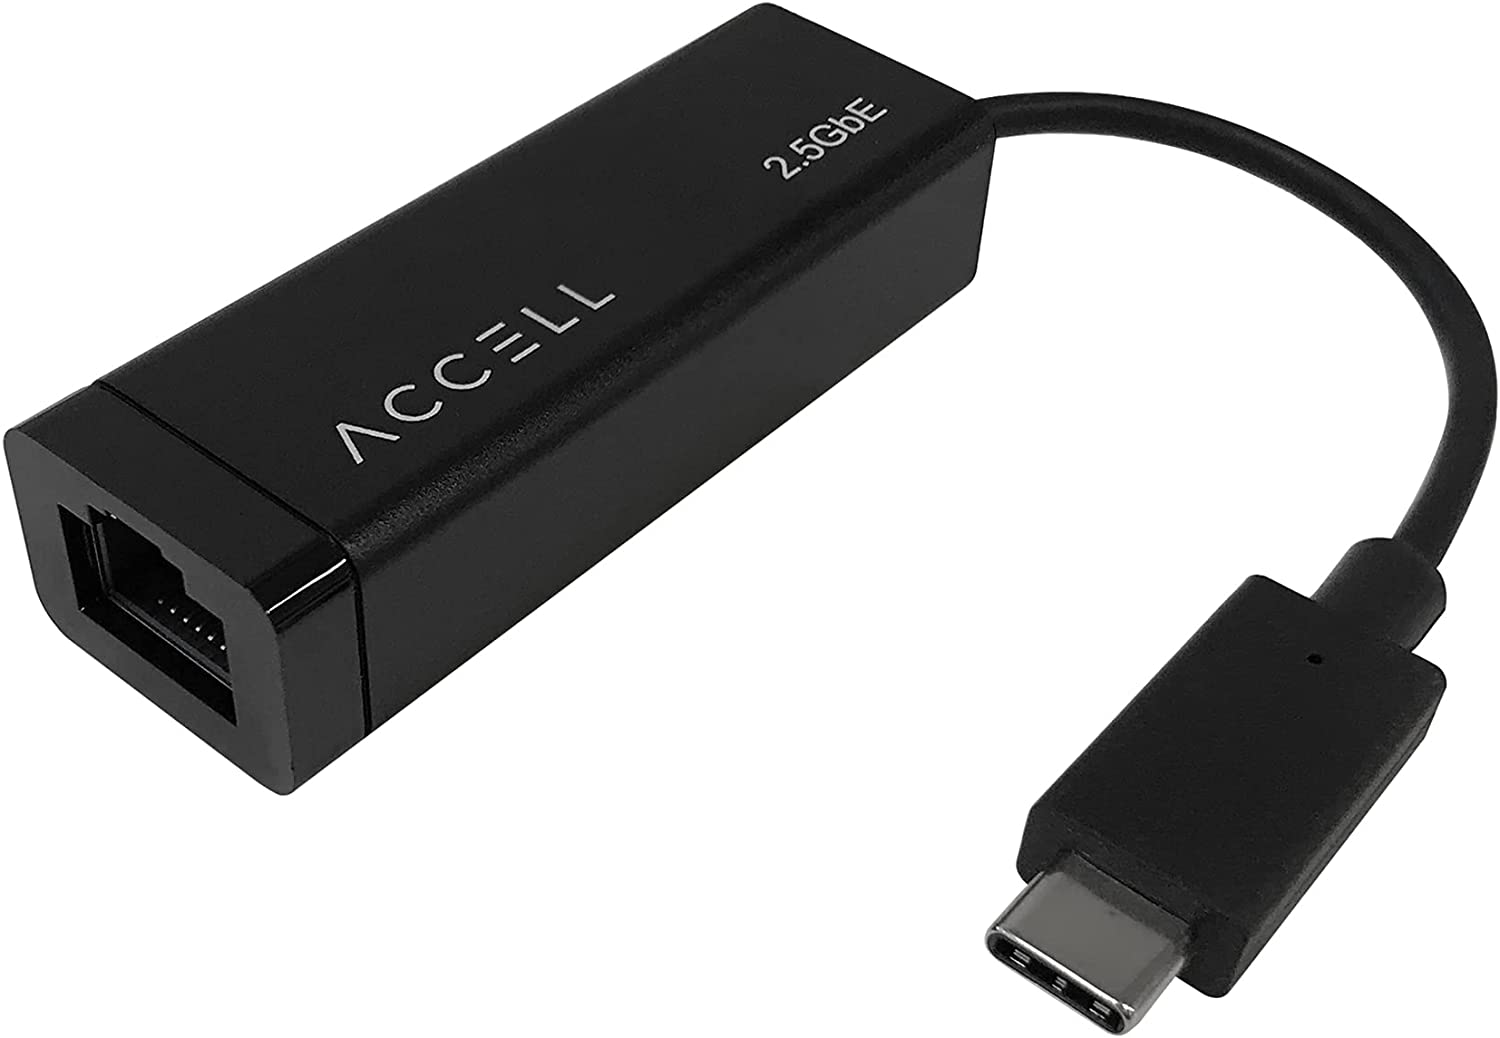 Accell USB-C to 2.5G Ethernet Adapter - USB Type C to RJ45 2.5Gbps high Speed LAN Converter, Compatible with Microsoft Office, MacBook, Thunderbolt 3, USB 3. 0